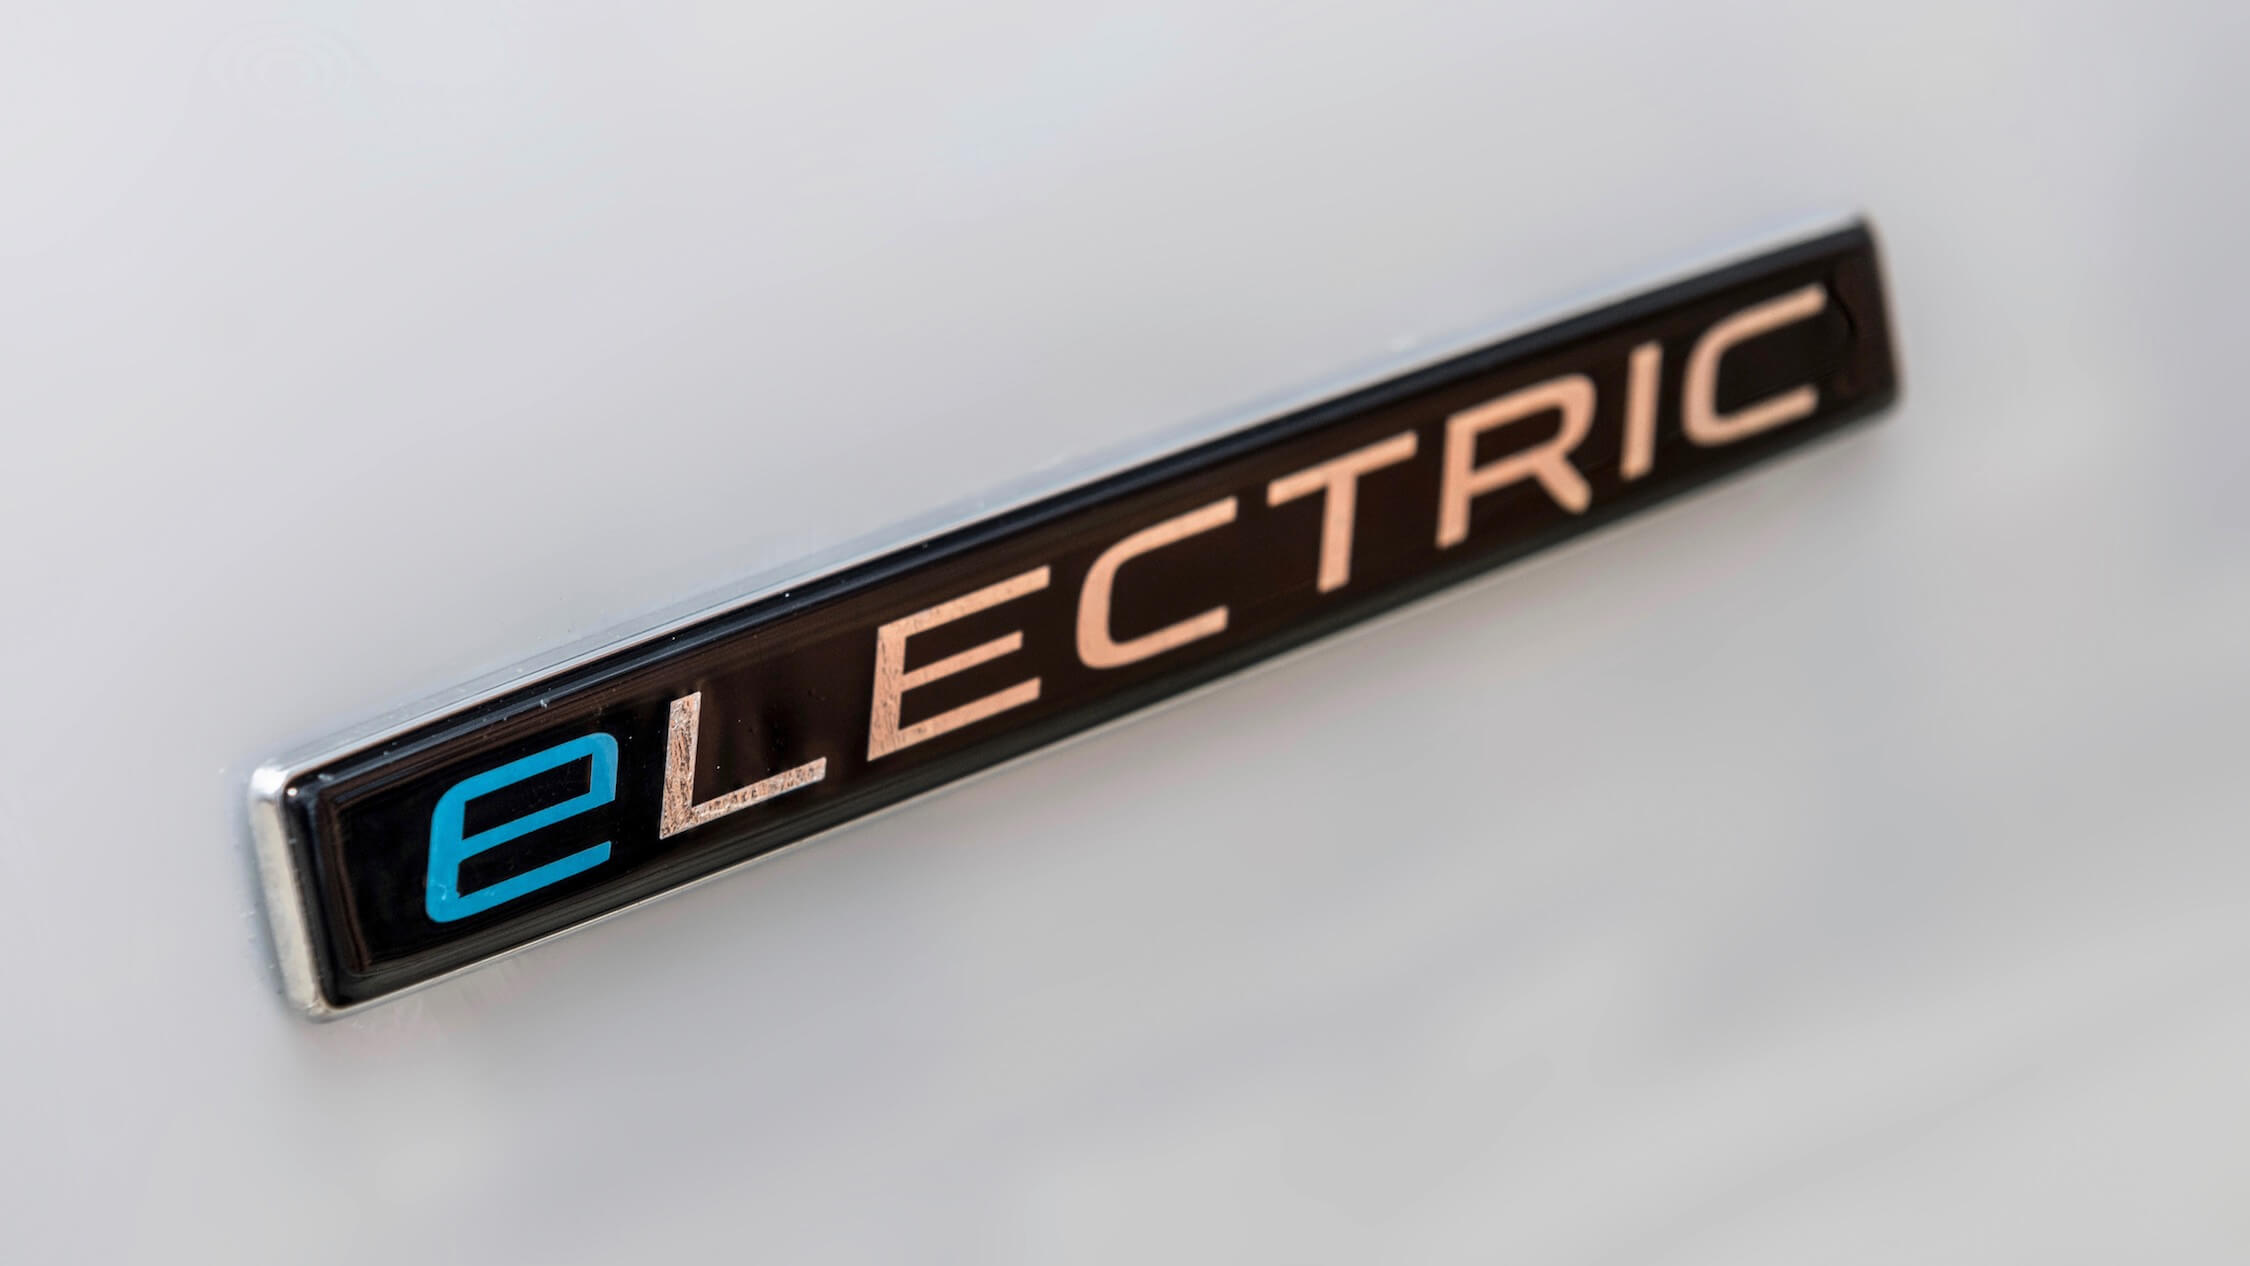 Mercedes electric logo